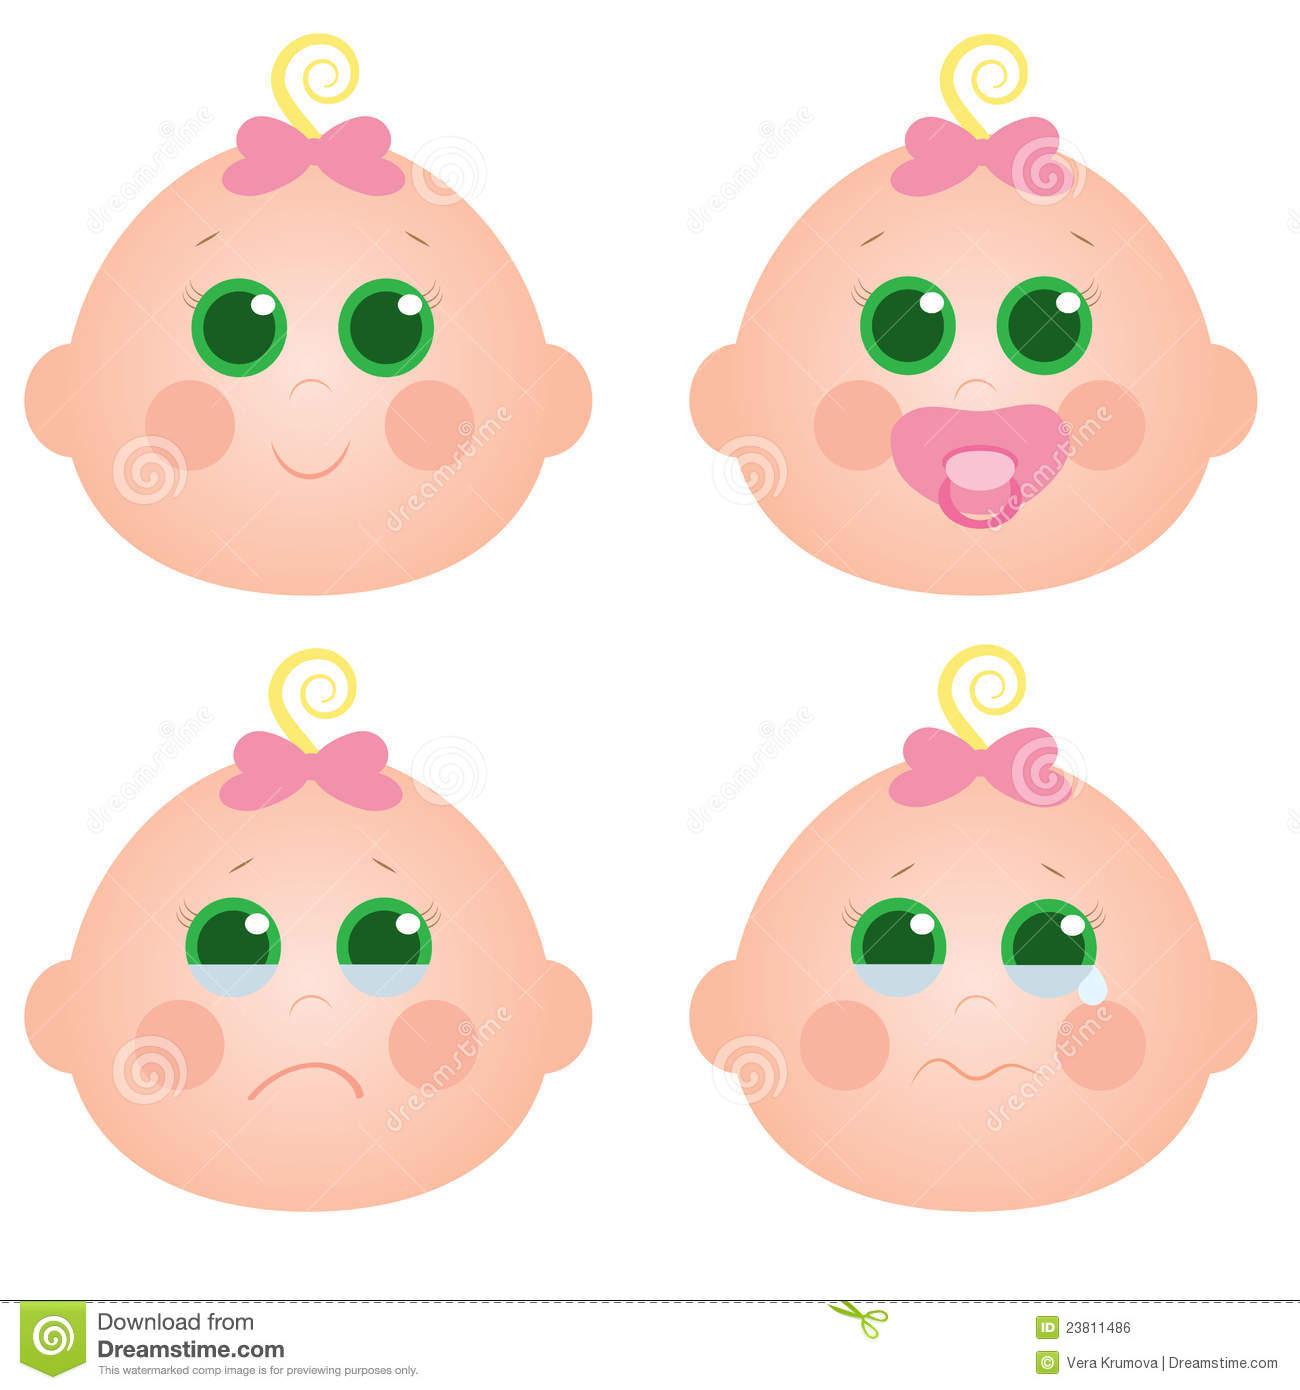 baby girl face stock vector illustration of beautiful 23811486 rh dreamstime com Dancing Smiley Face Clip Art Dancing Smiley Face Clip Art